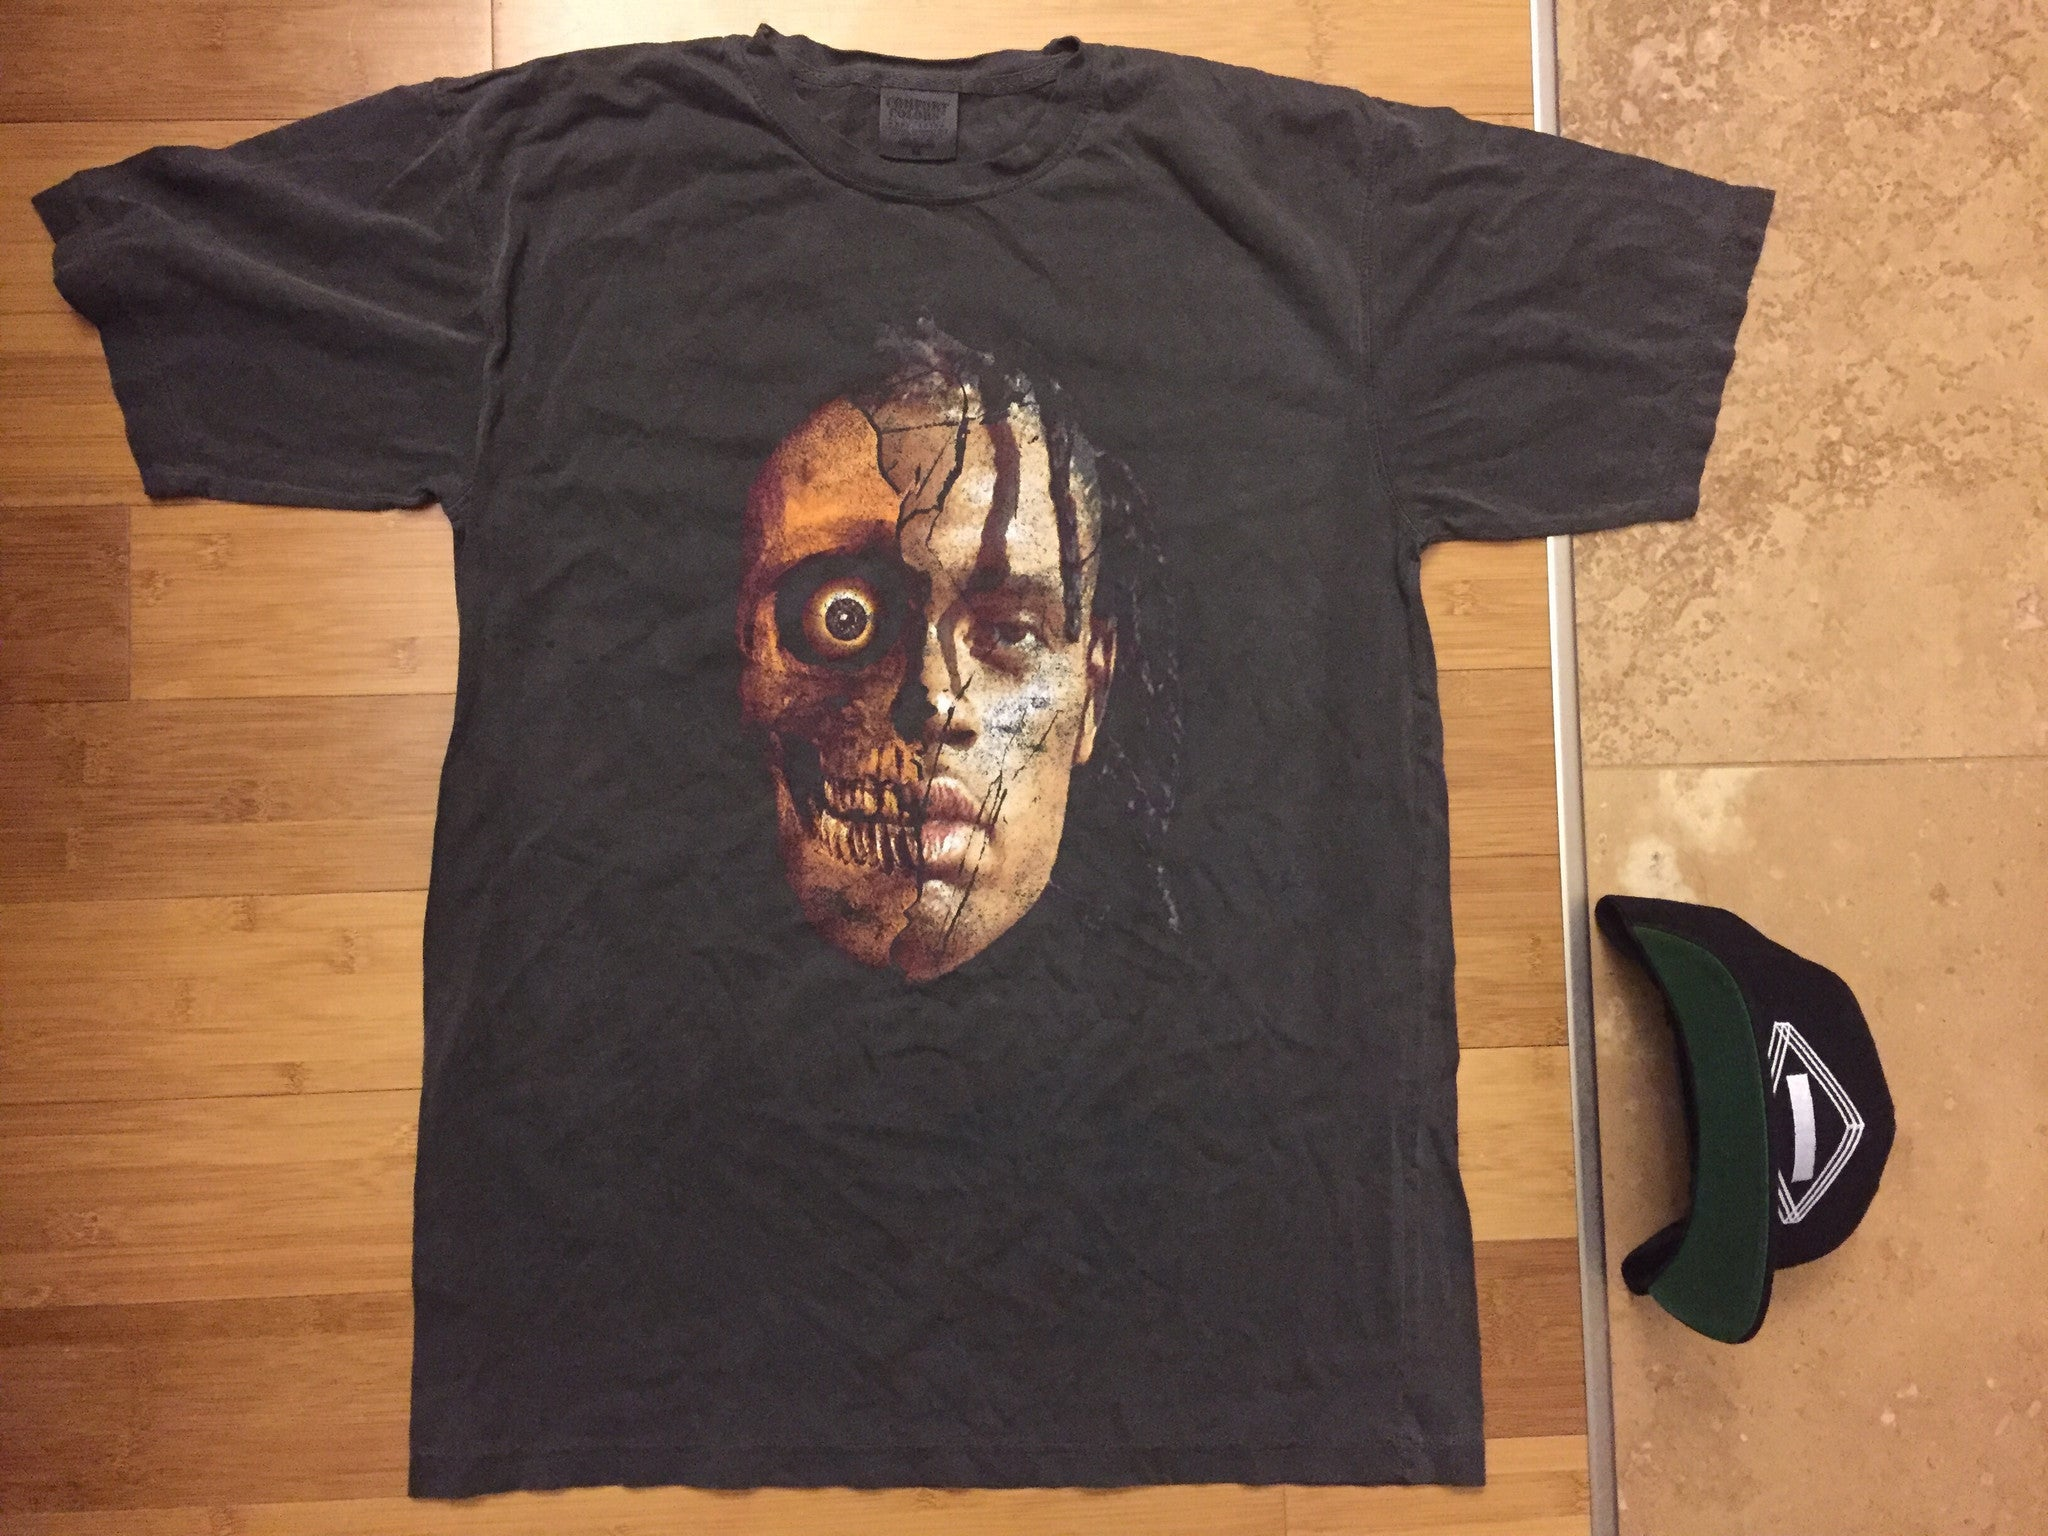 *new* Travis Scott Anti Tour Tee DS